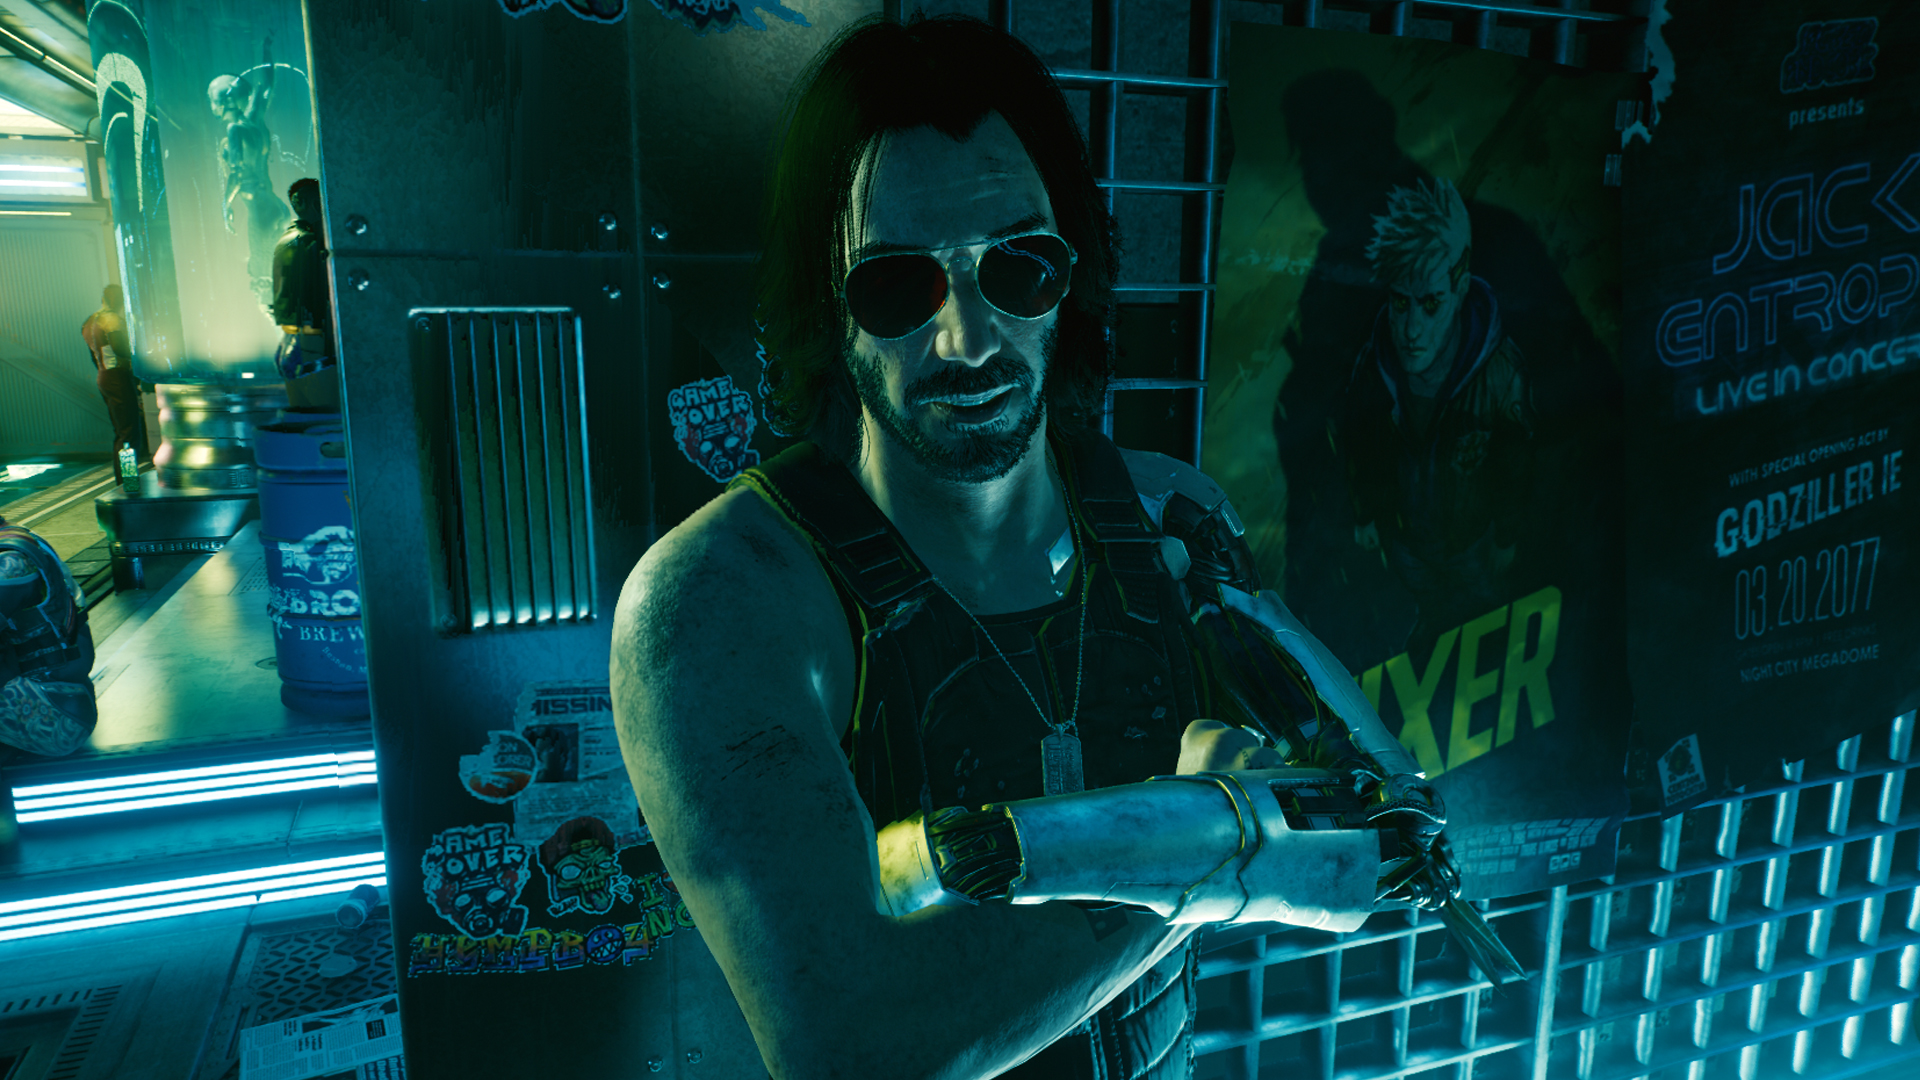 Cyberpunk 2077 hotfix 1.05 removes some bugs, and disables the debug console